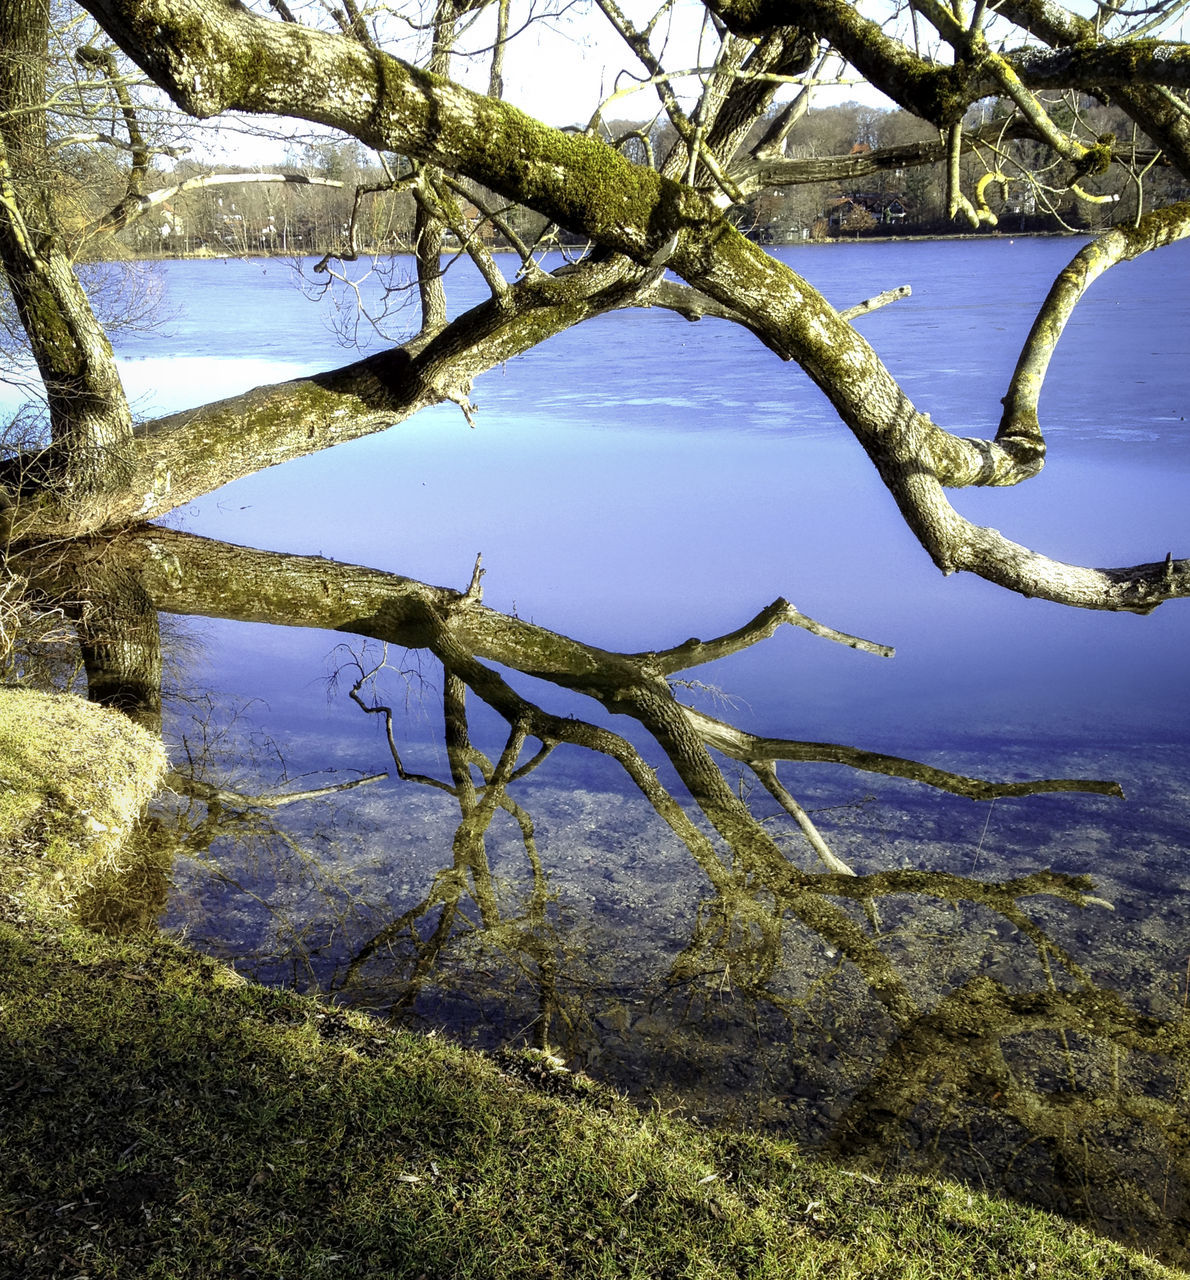 nature, tree, day, outdoors, beauty in nature, tranquil scene, no people, scenics, lake, branch, tranquility, water, sky